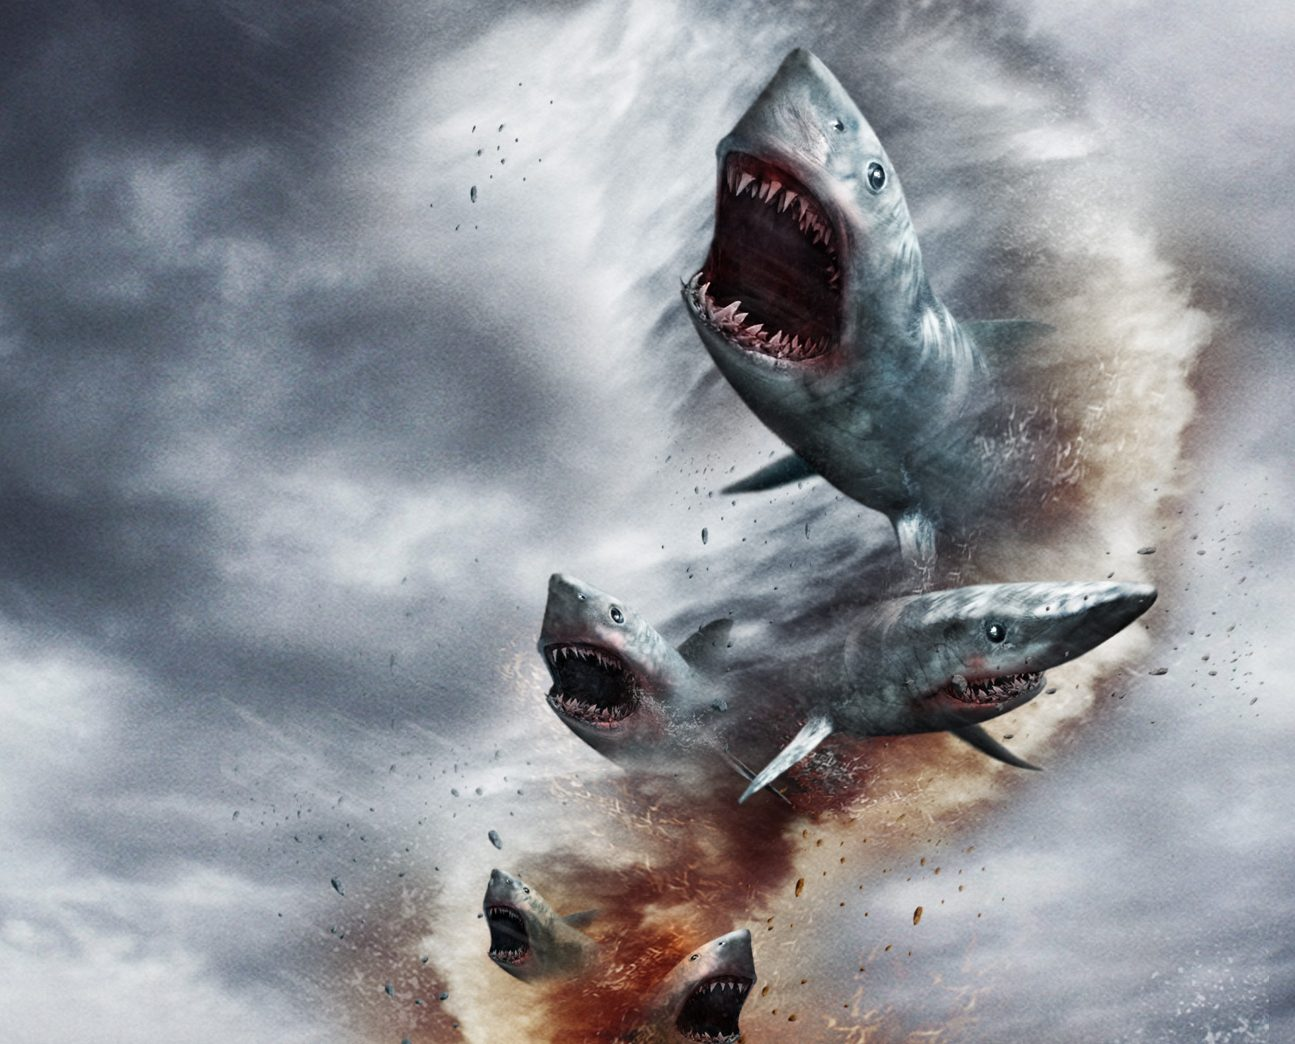 sharknado 1 e1614175223189 Waterworld: The Story Behind One Of The Biggest Hollywood Disasters Of All Time